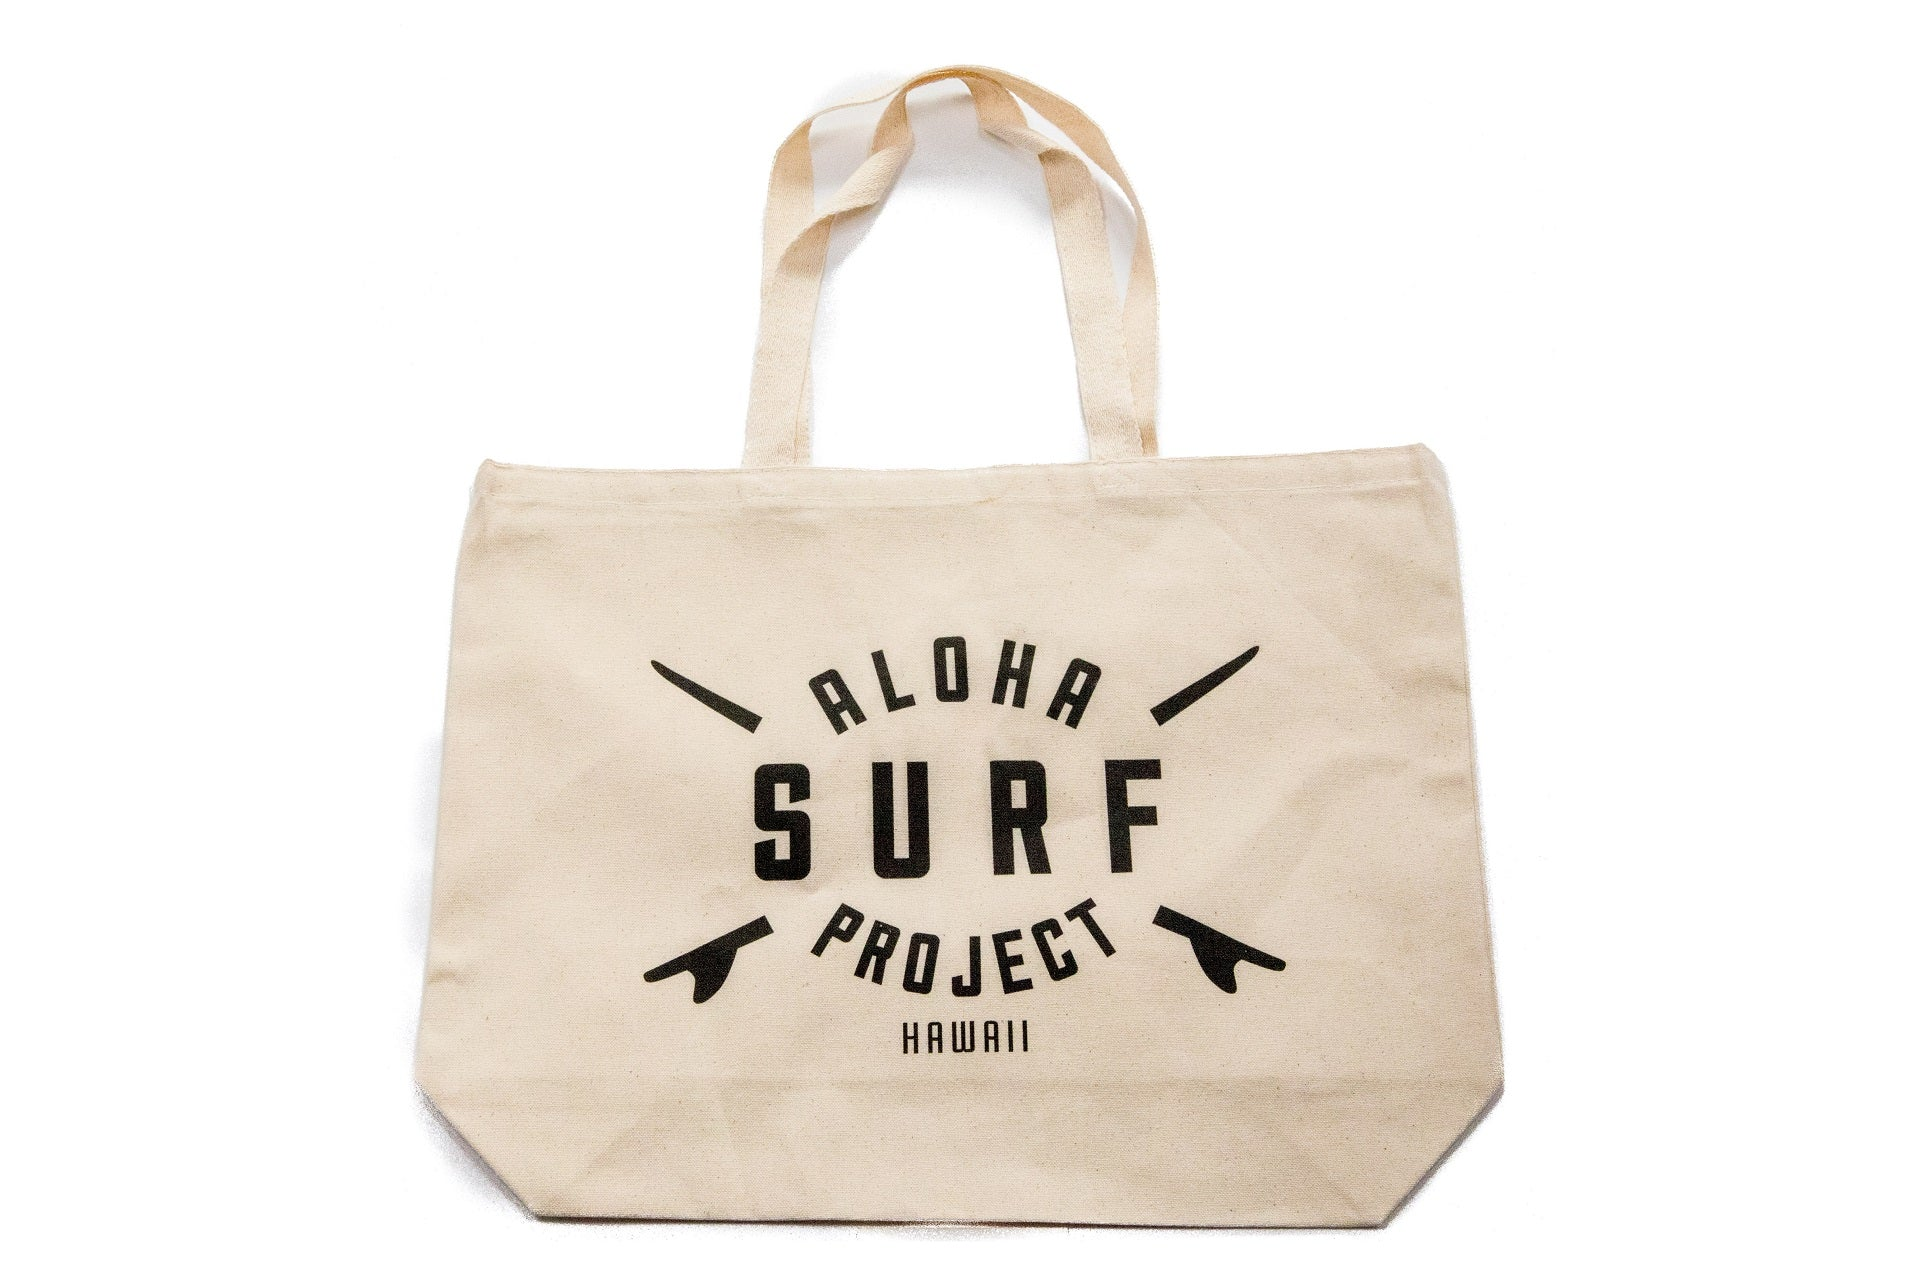 asp tote bag logo large aloha surf project